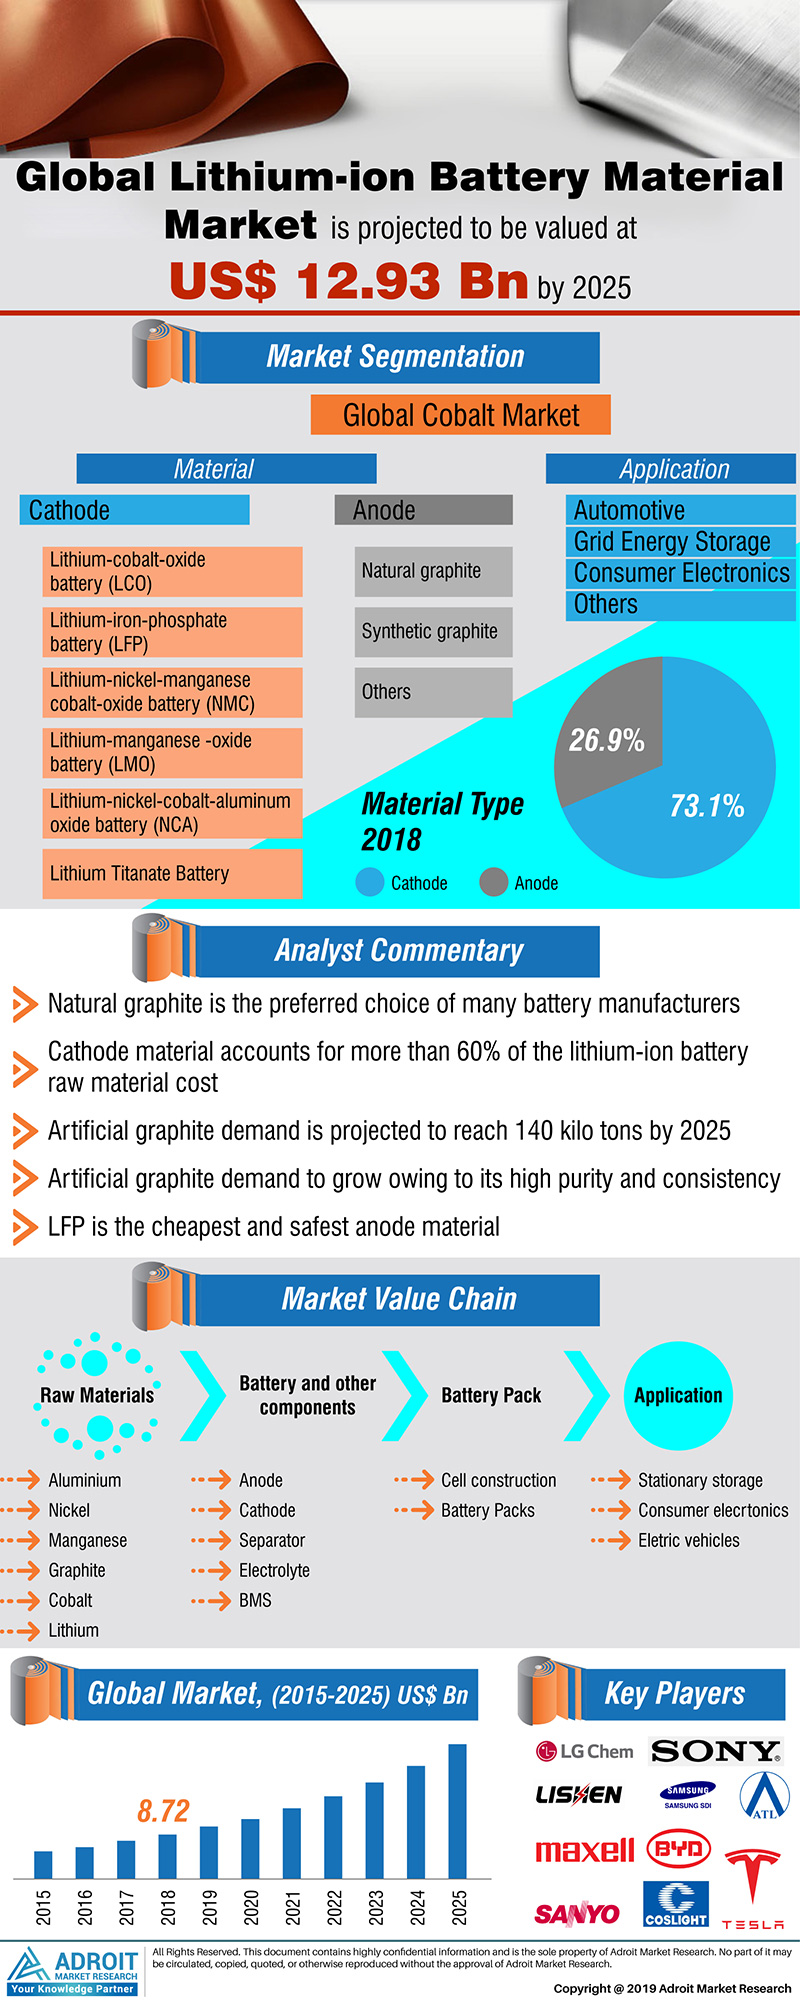 Global Lithium-ion Battery Materials Market Trends and Forecasts Research Report